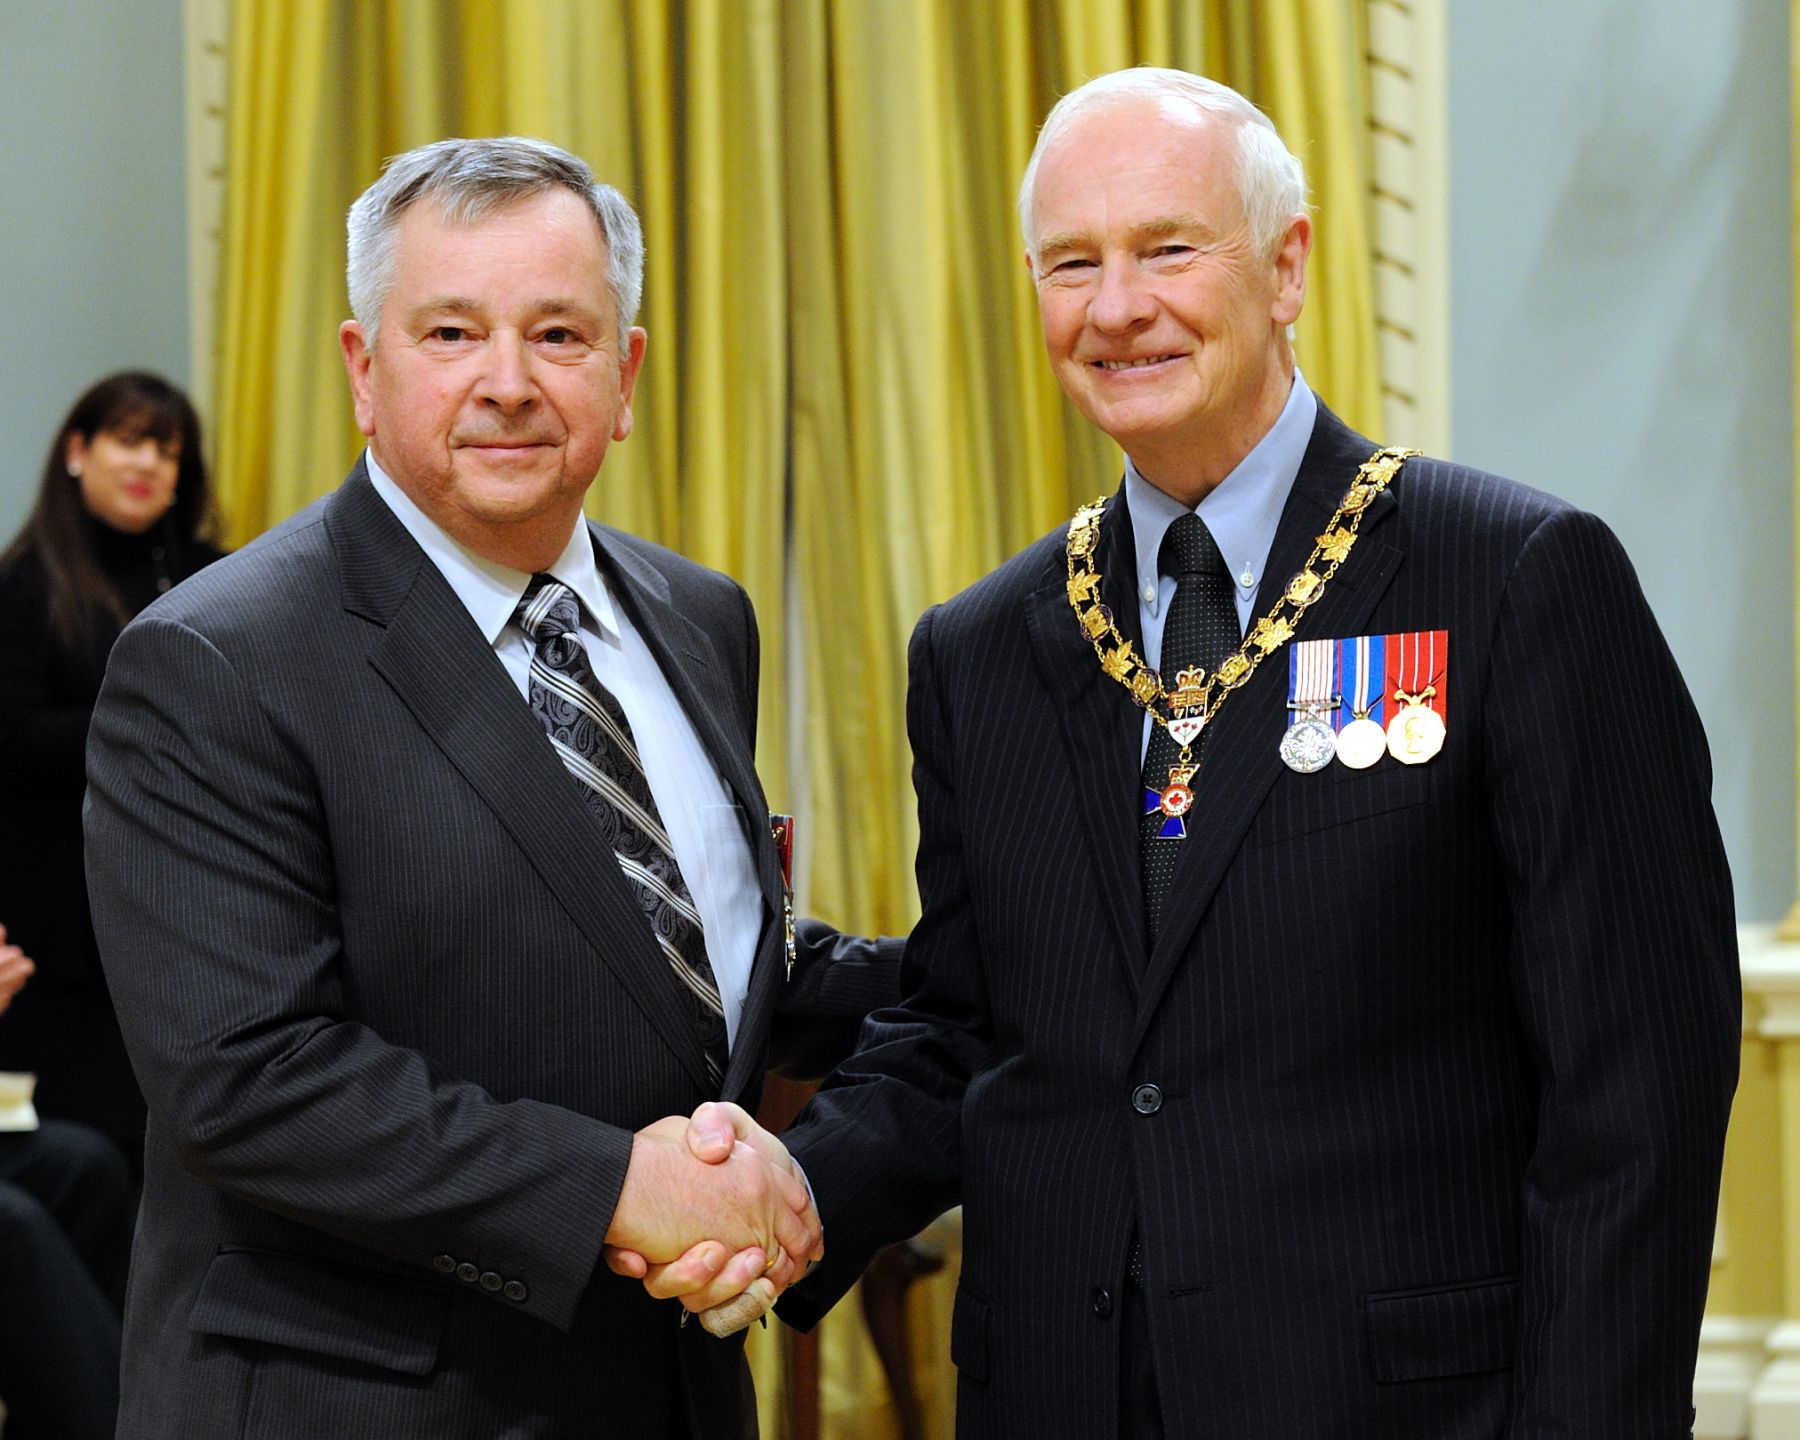 His Excellency presented the Order of Military Merit at the Member level (M.M.M.) to Captain Patrick Lee, M.M.M., C.D., 36 Canadian Brigade Group Headquarters, Halifax, Nova Scotia.